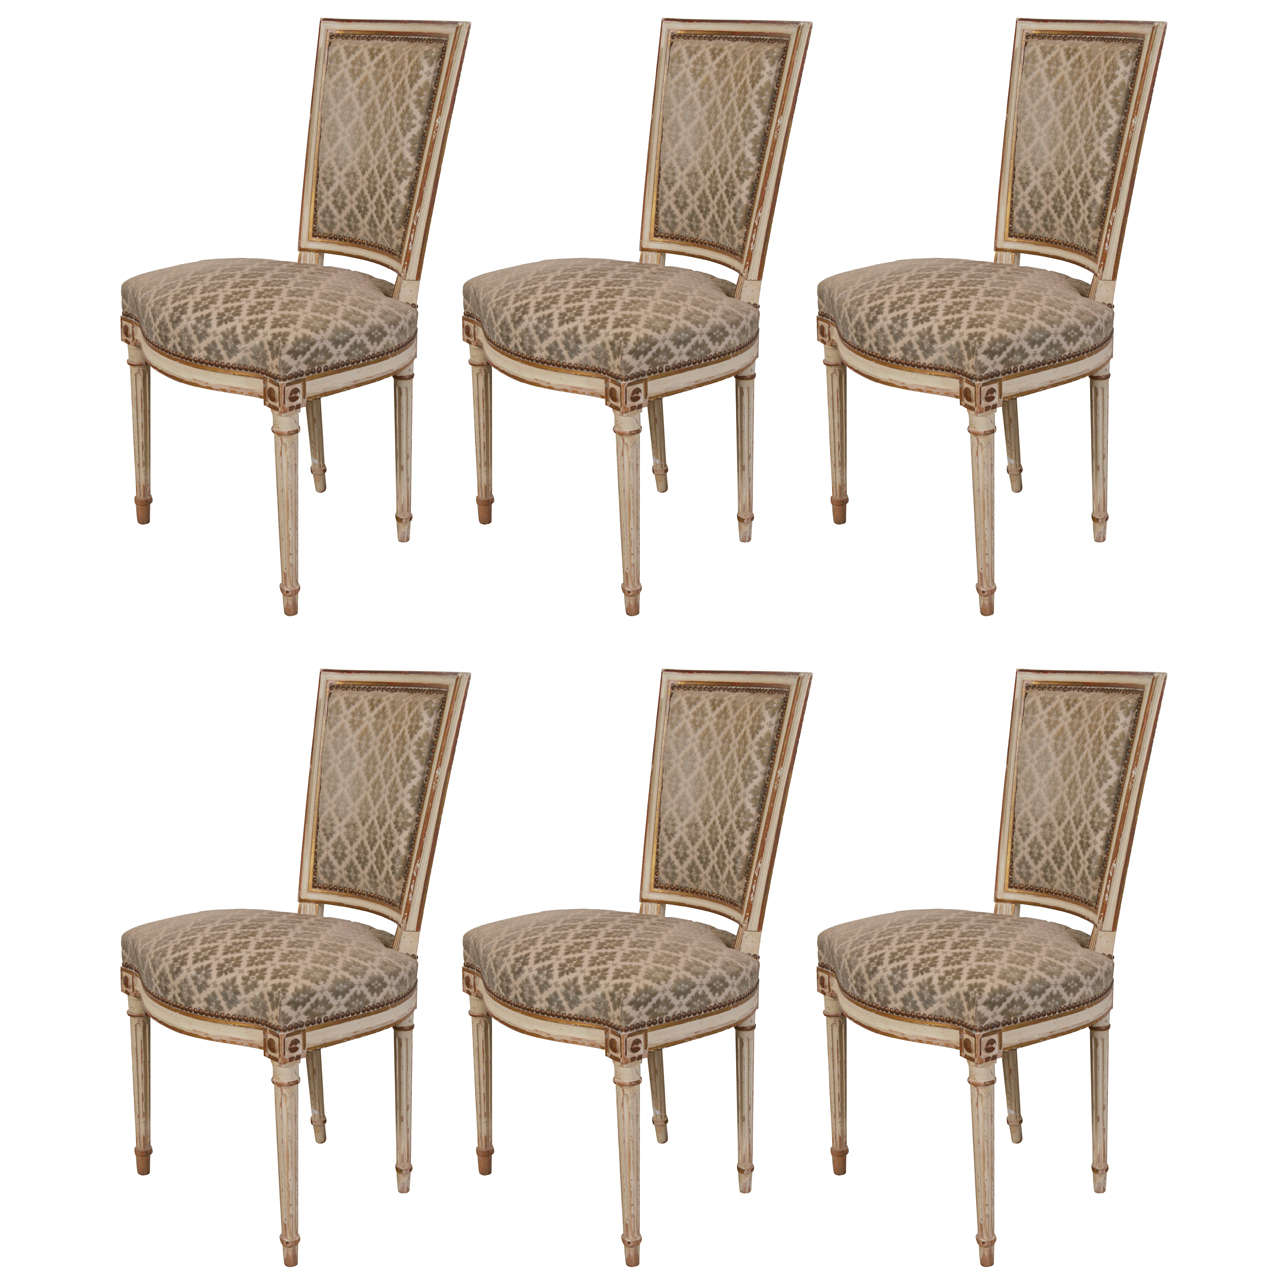 Set Of 6 Louis XVI Style Dining Chairs By Maison Jansen At 1stdibs